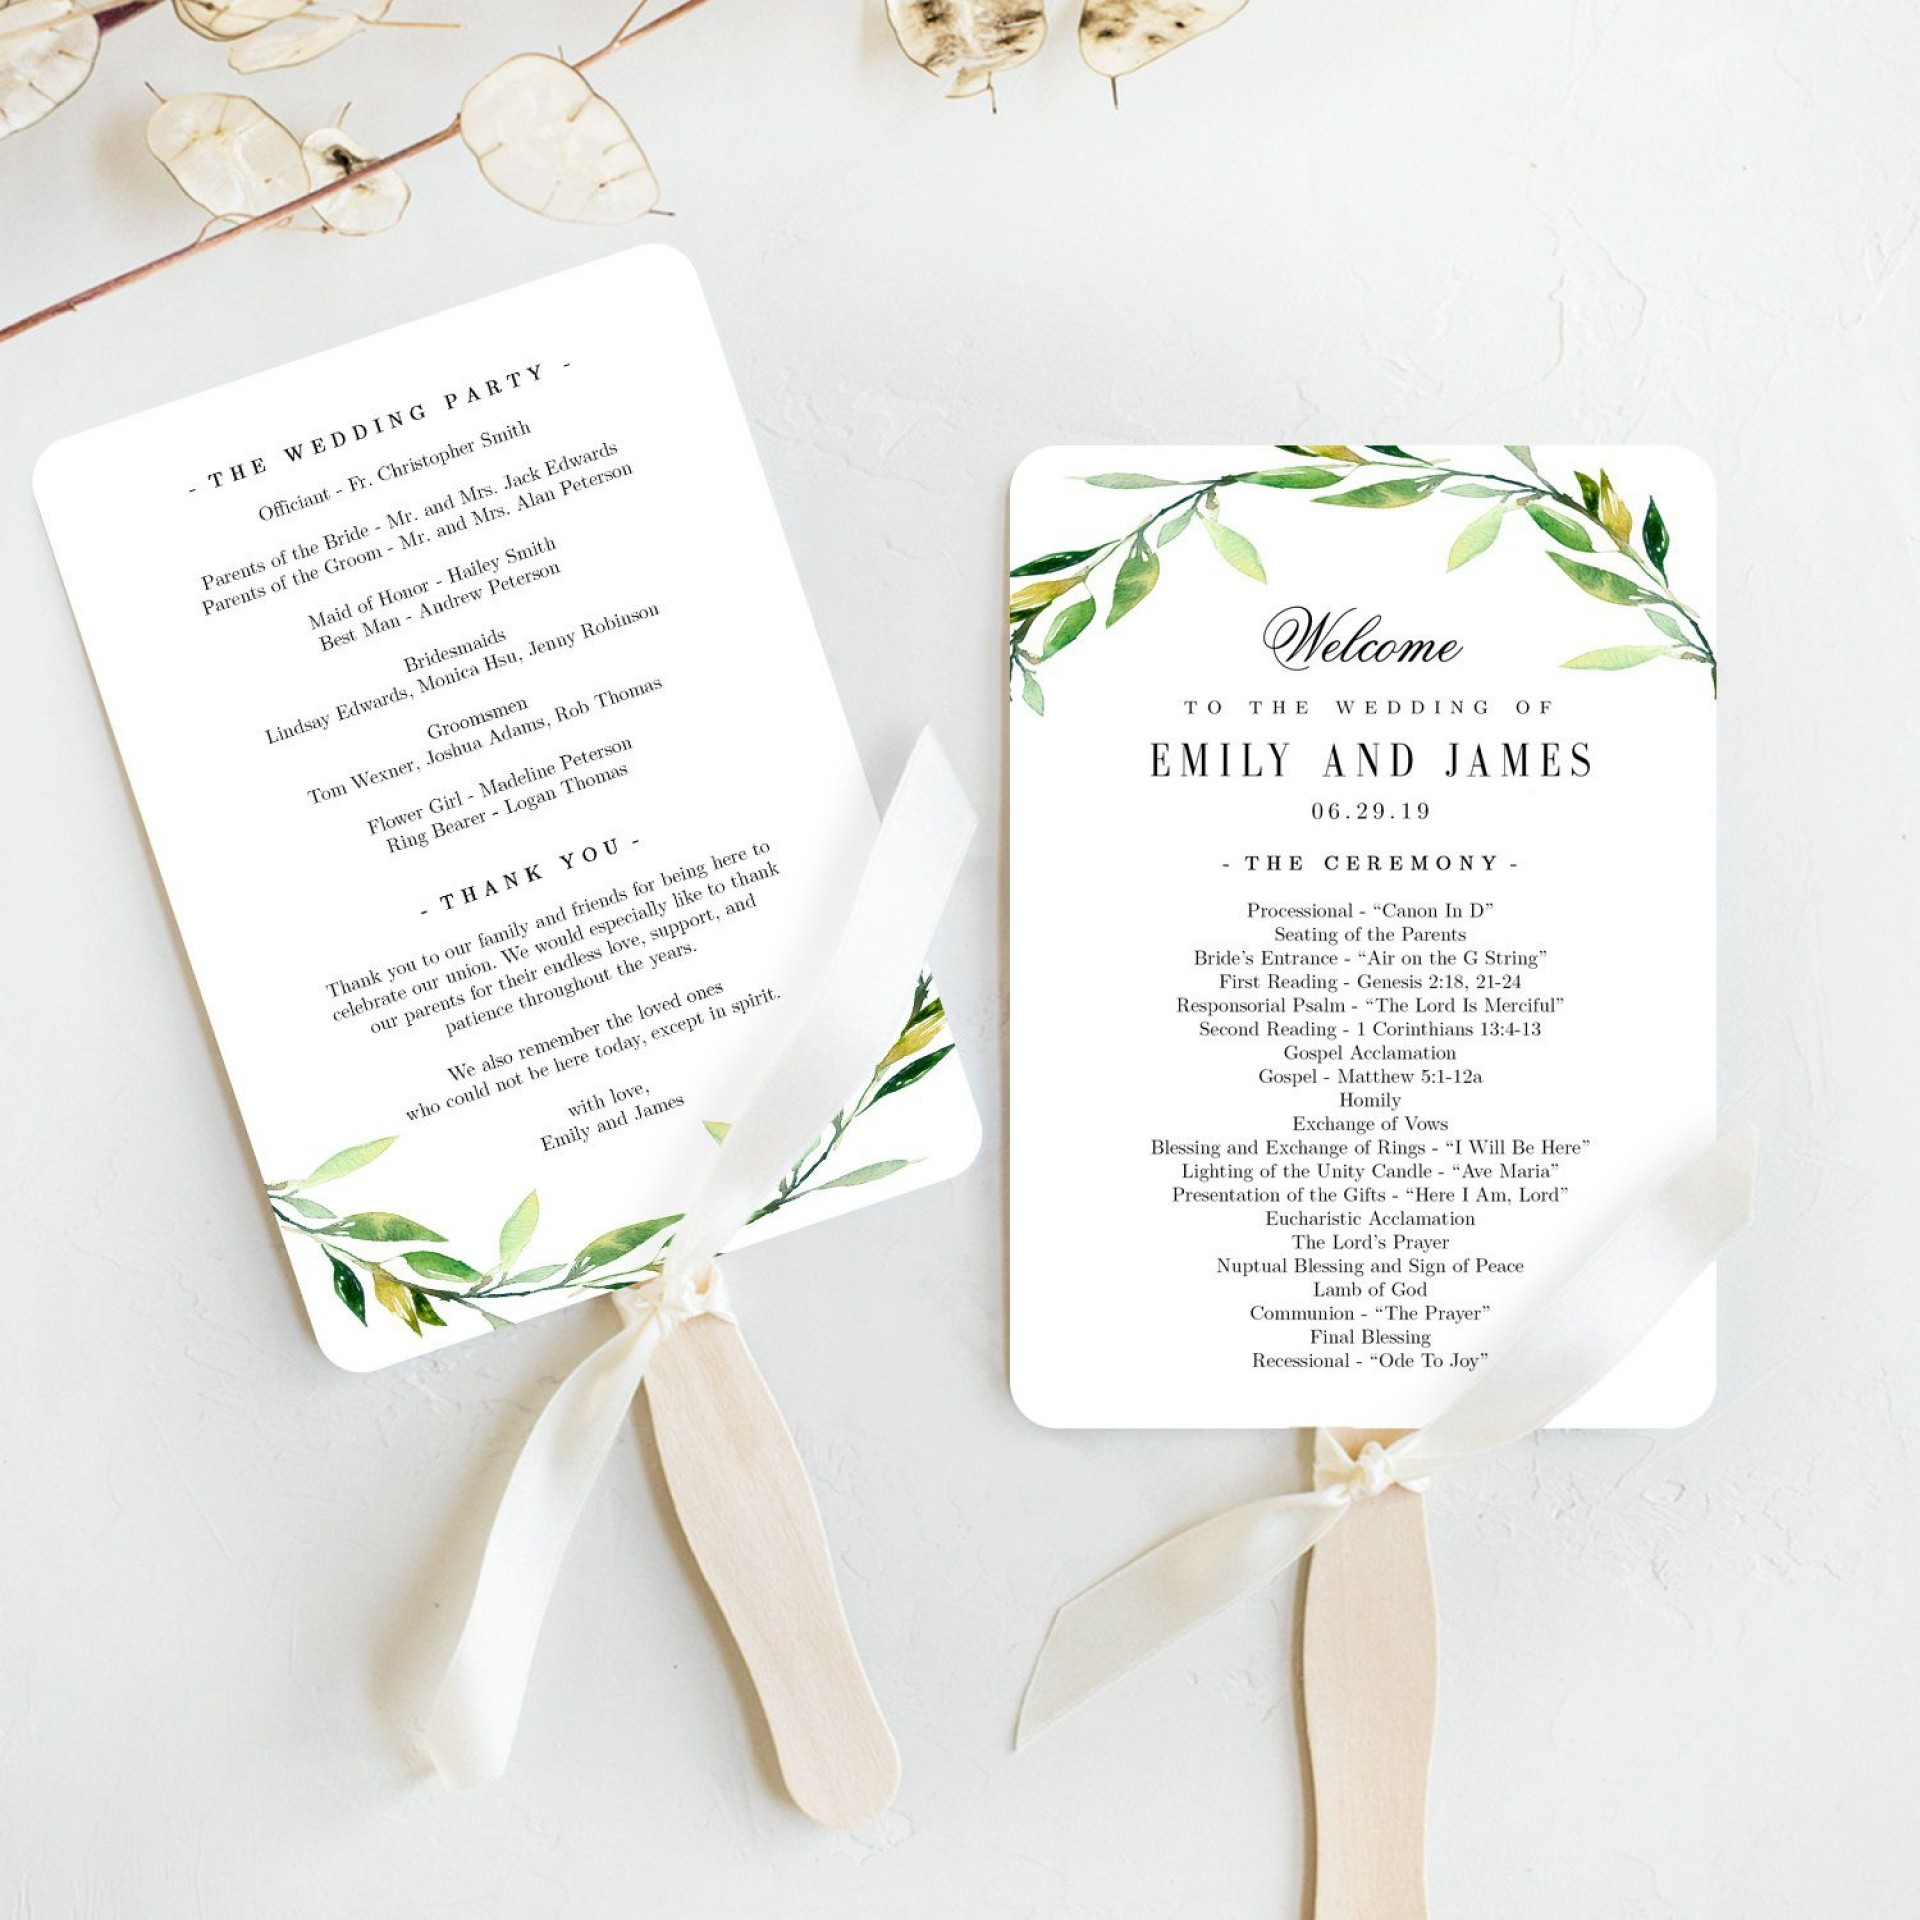 005 Top Wedding Program Fan Template High Resolution  Free Word Paddle Downloadable That Can Be Printed1920